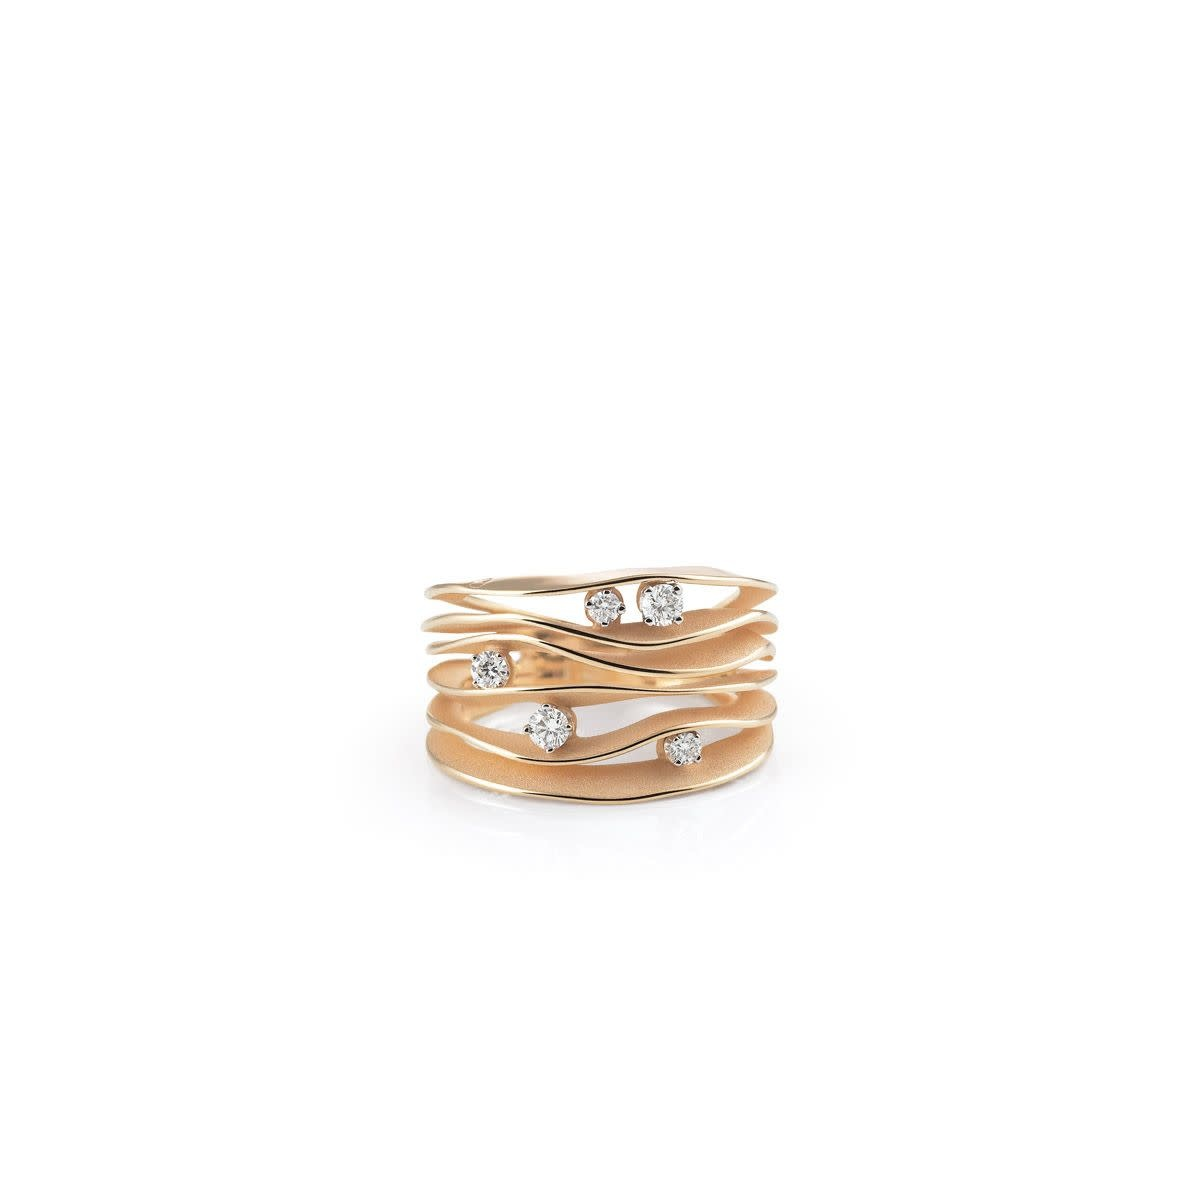 Dune Collection Ring, 18Kt Orange Apricot Gold With Diamonds-1